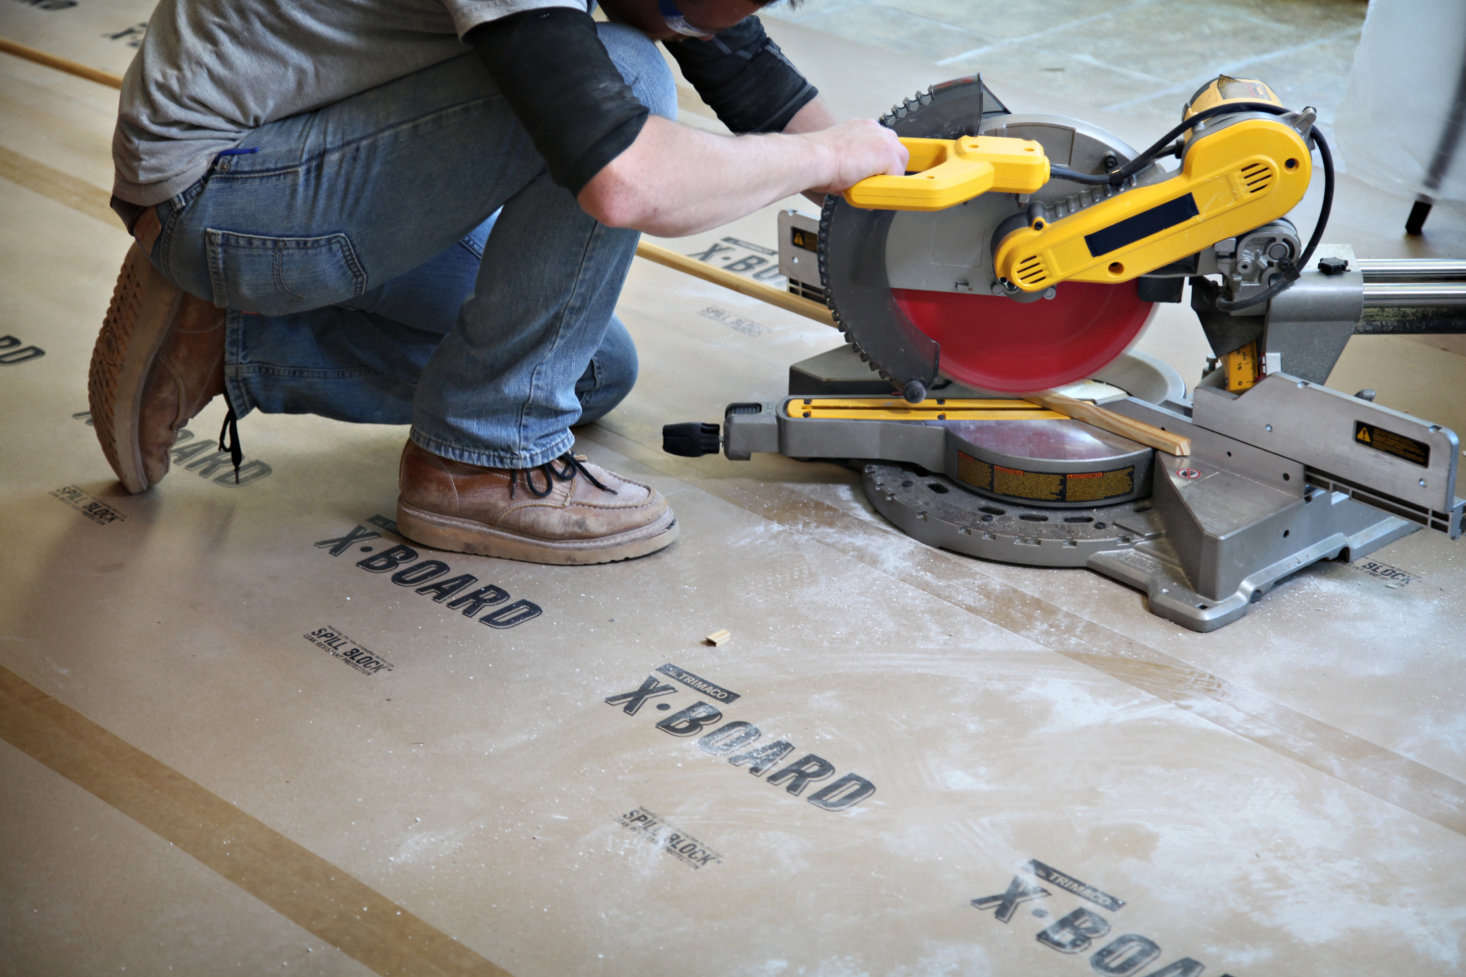 Trimaco's X-Board is 2½ times thicker than standard builder's paper and protects against paint, mud, water, and other liquid spills while remaining breathable enough for floors that are still curing.